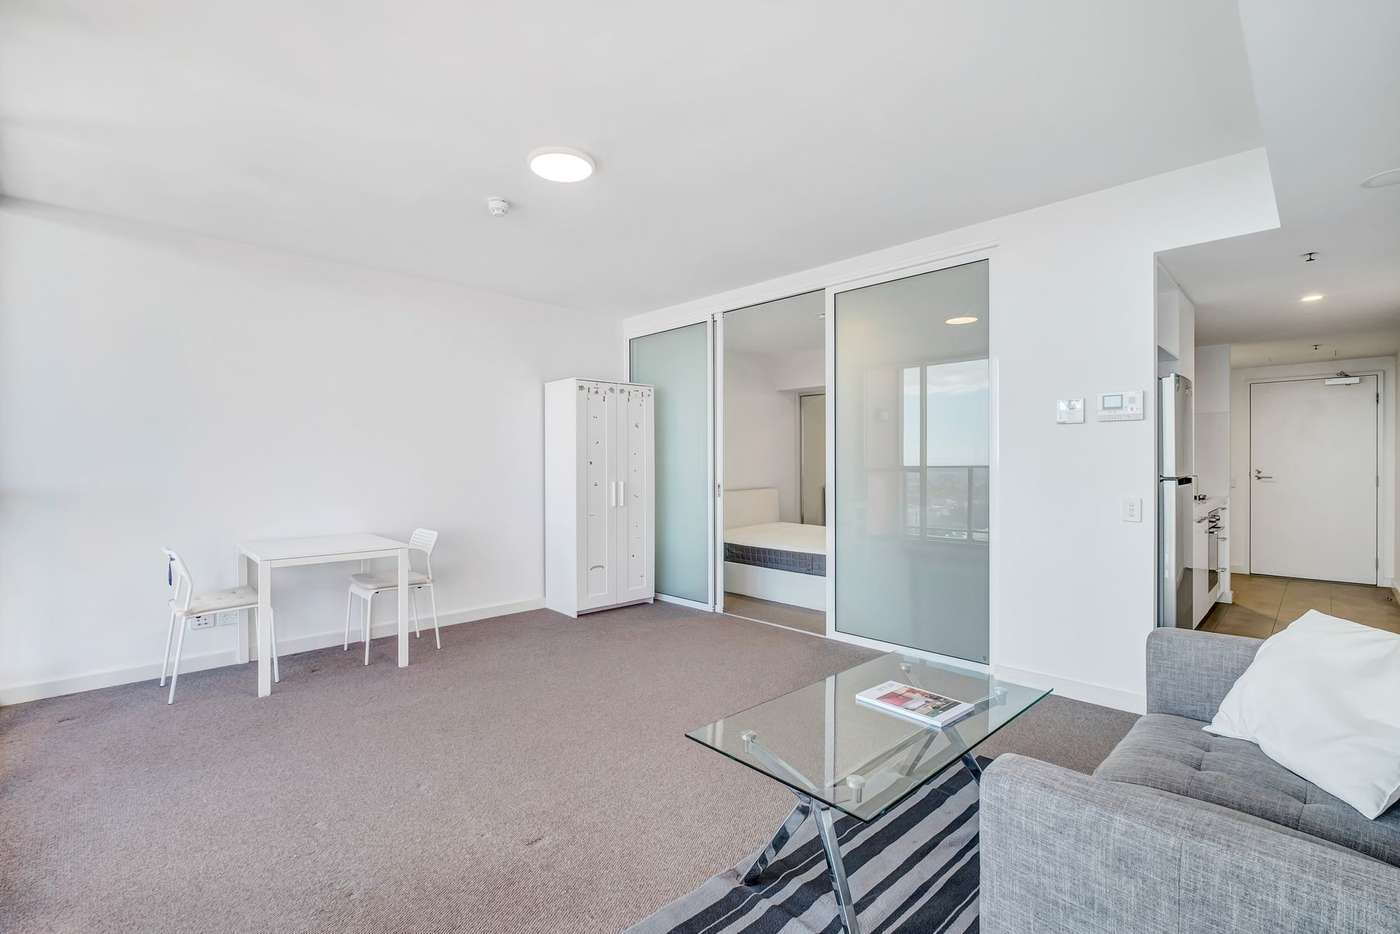 Fifth view of Homely apartment listing, 1109/160 Grote Street, Adelaide SA 5000